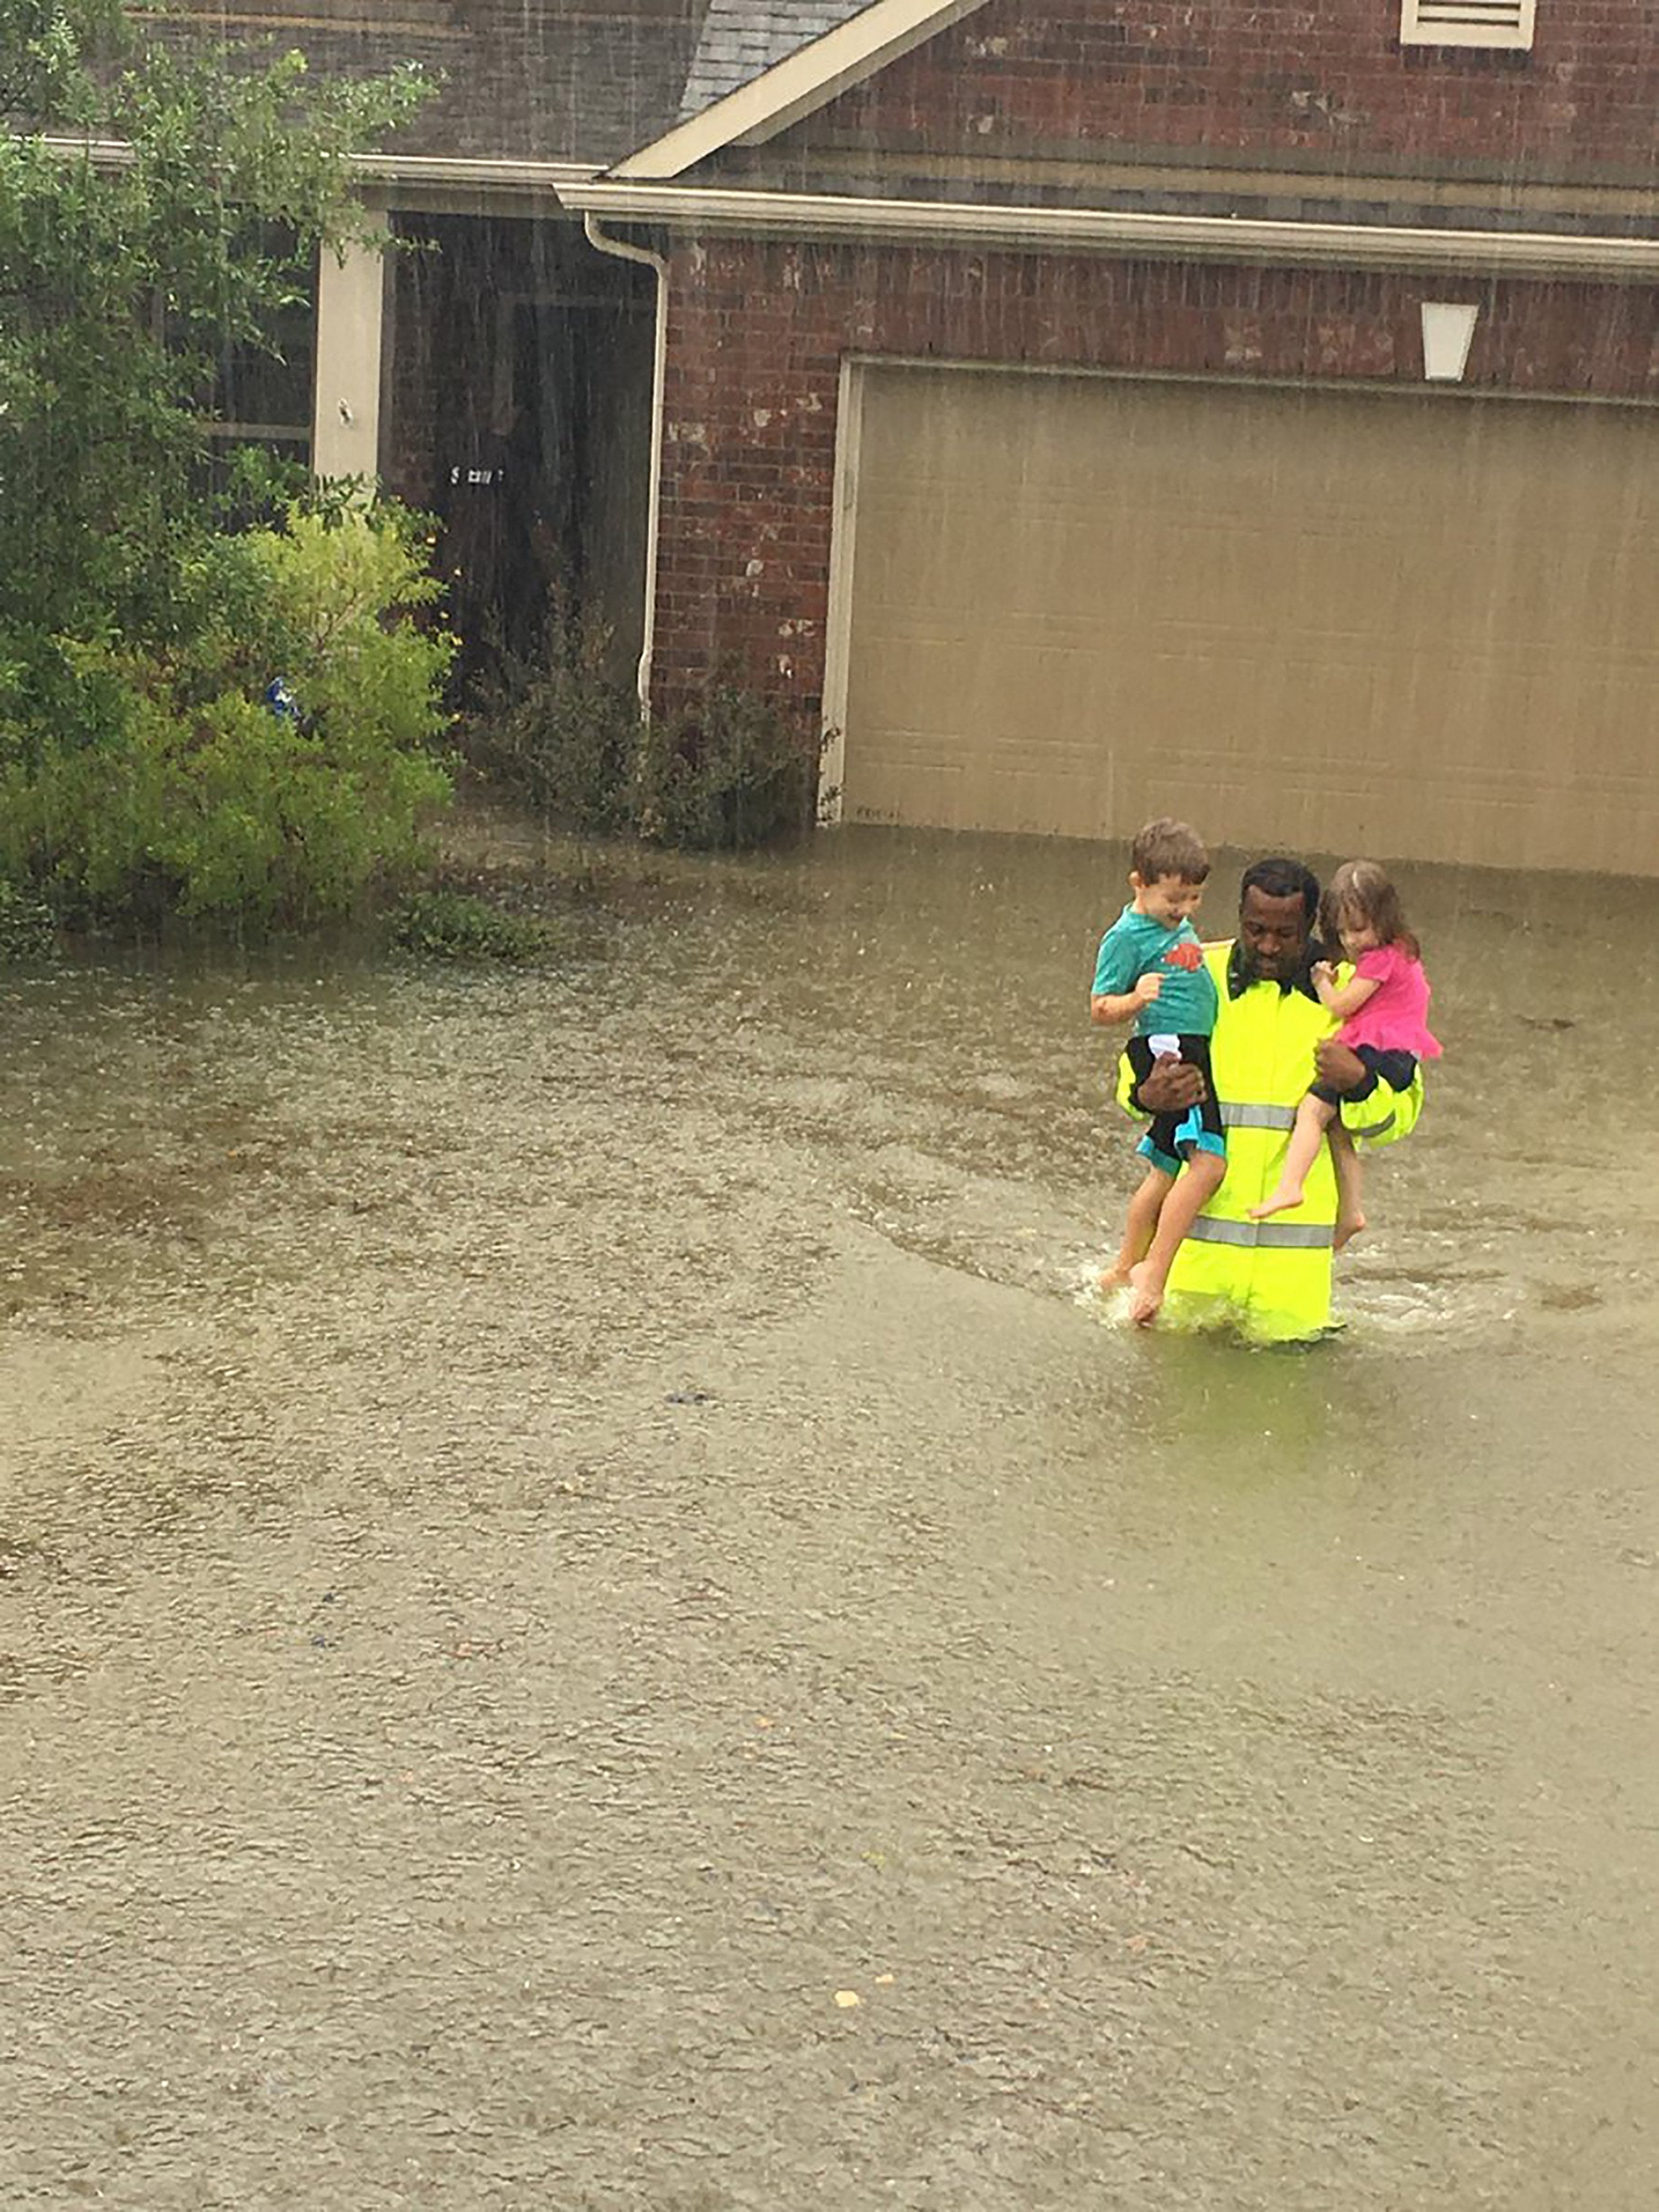 The Story Behind The Photo Of A Texas Cop Carrying 2 Kids Through Waist-Deep Water